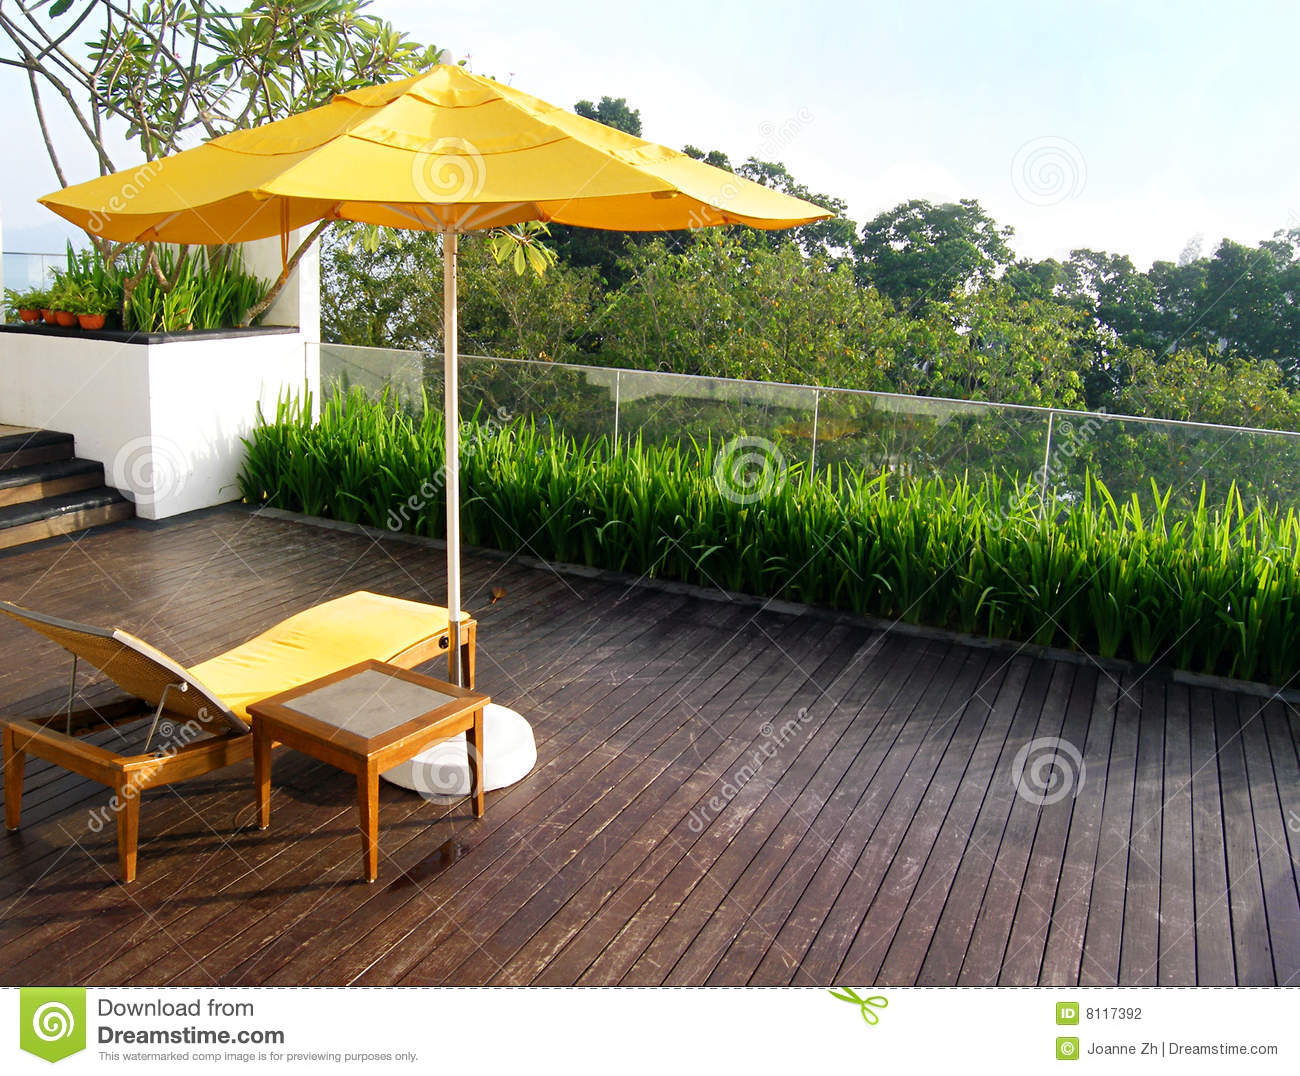 Outdoor Patio In Wood Deck Stock Photography - Image: 8117392